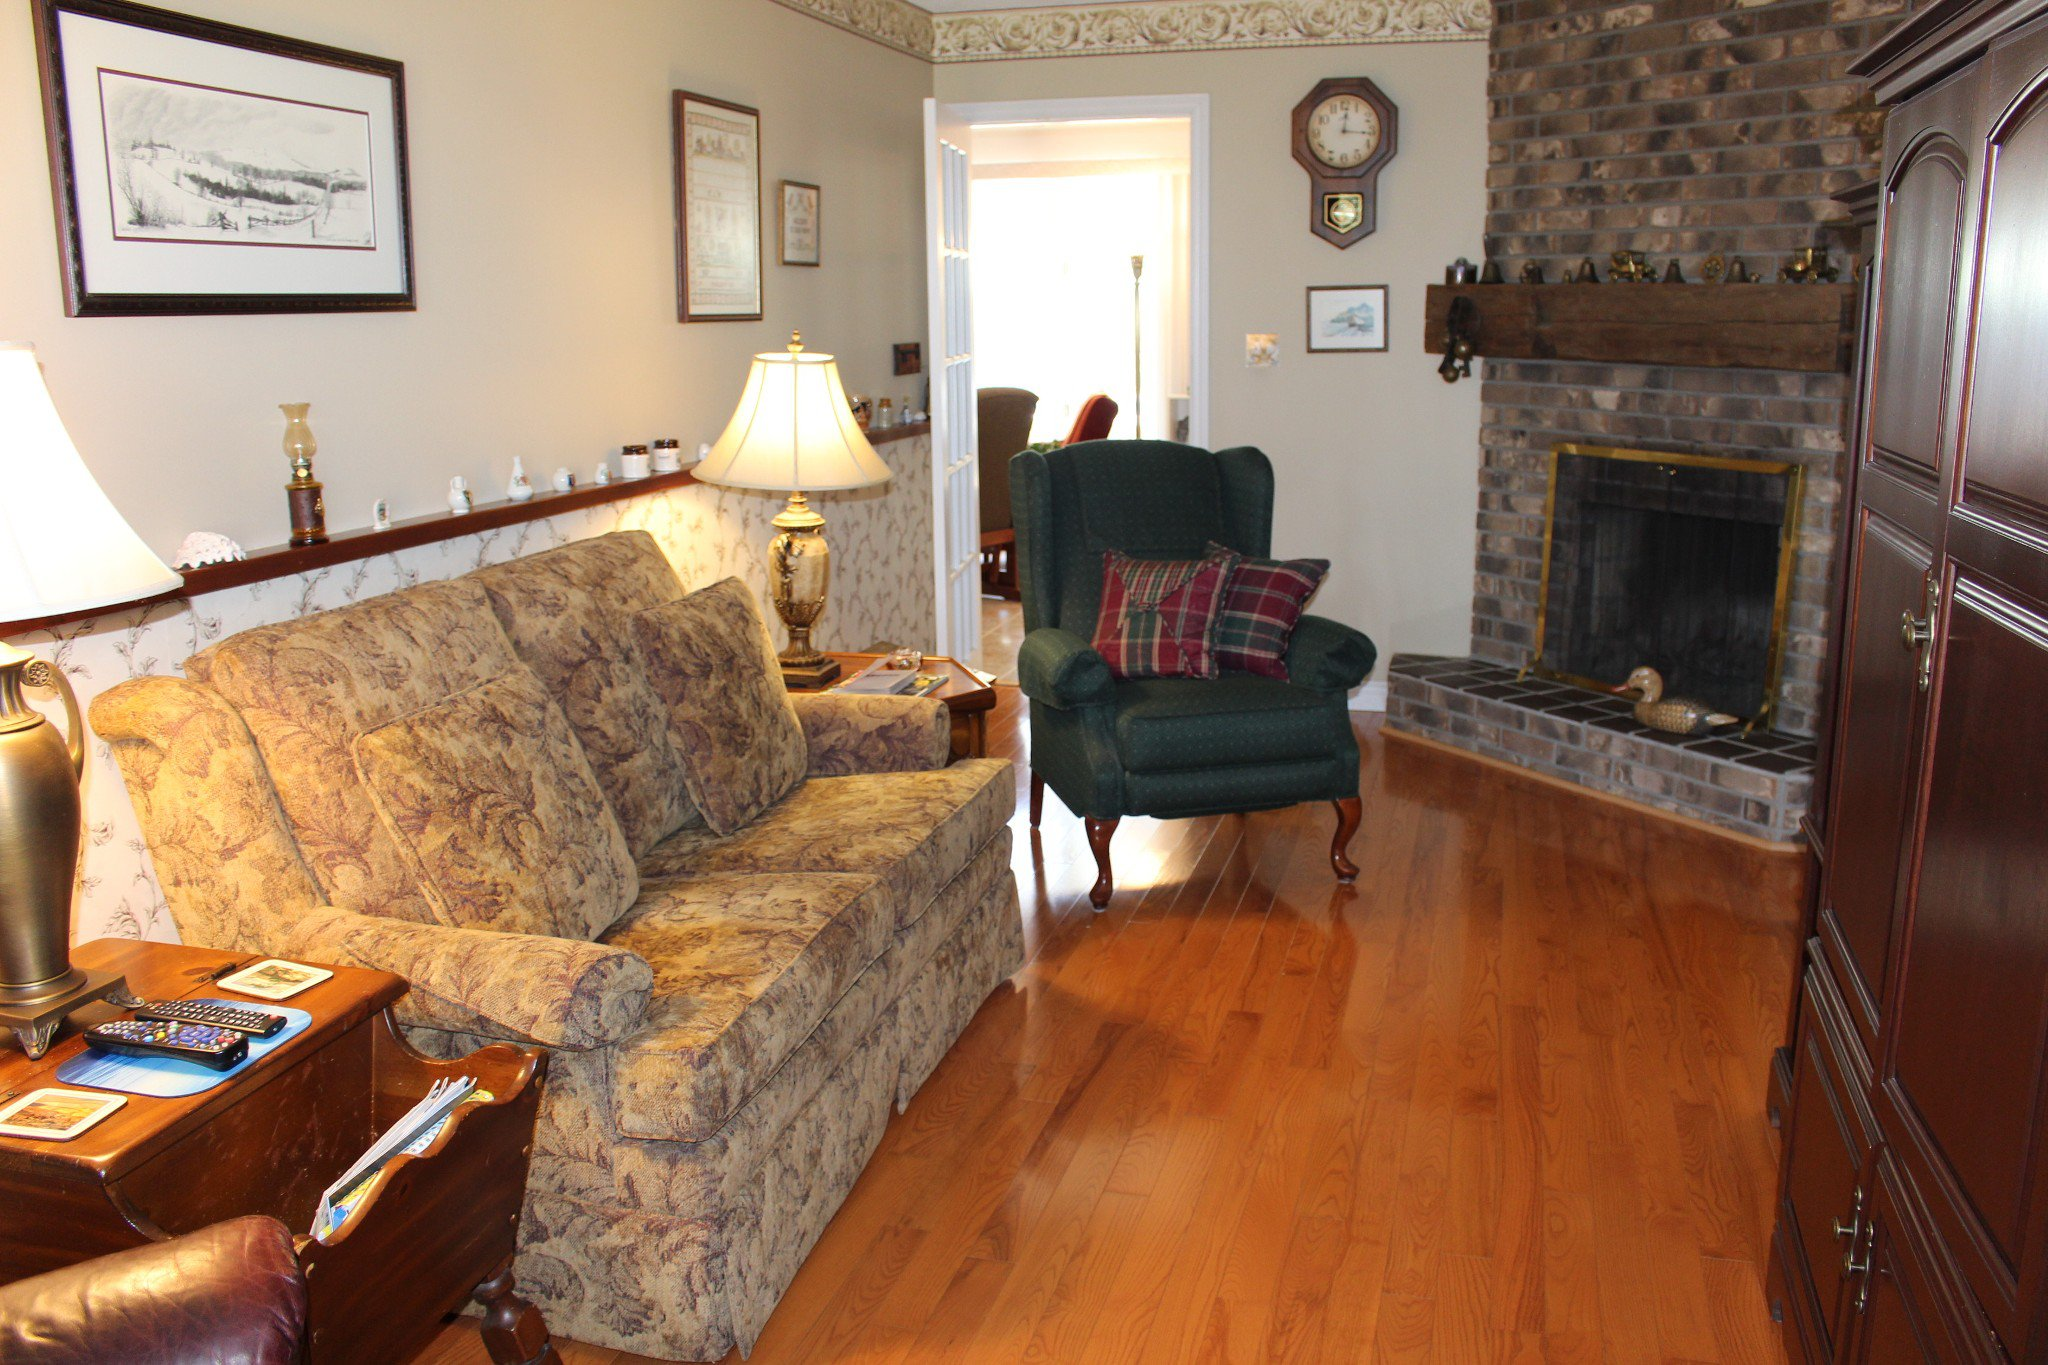 Photo 15: Photos: 5144 Oak Hills Road in Bewdley: Residential Detached for sale : MLS®# 125303